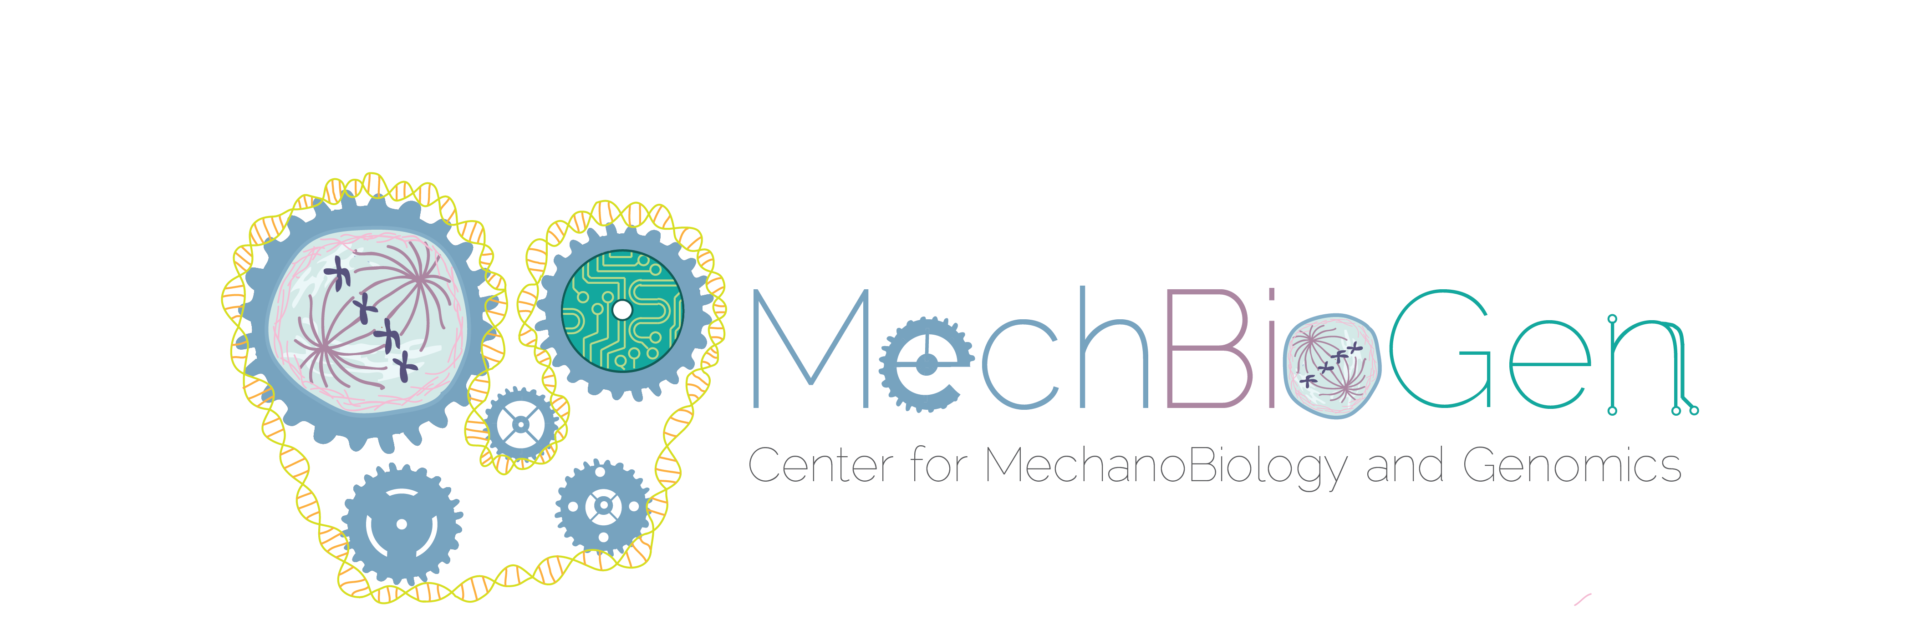 Center for MechanoBiology and Genomics